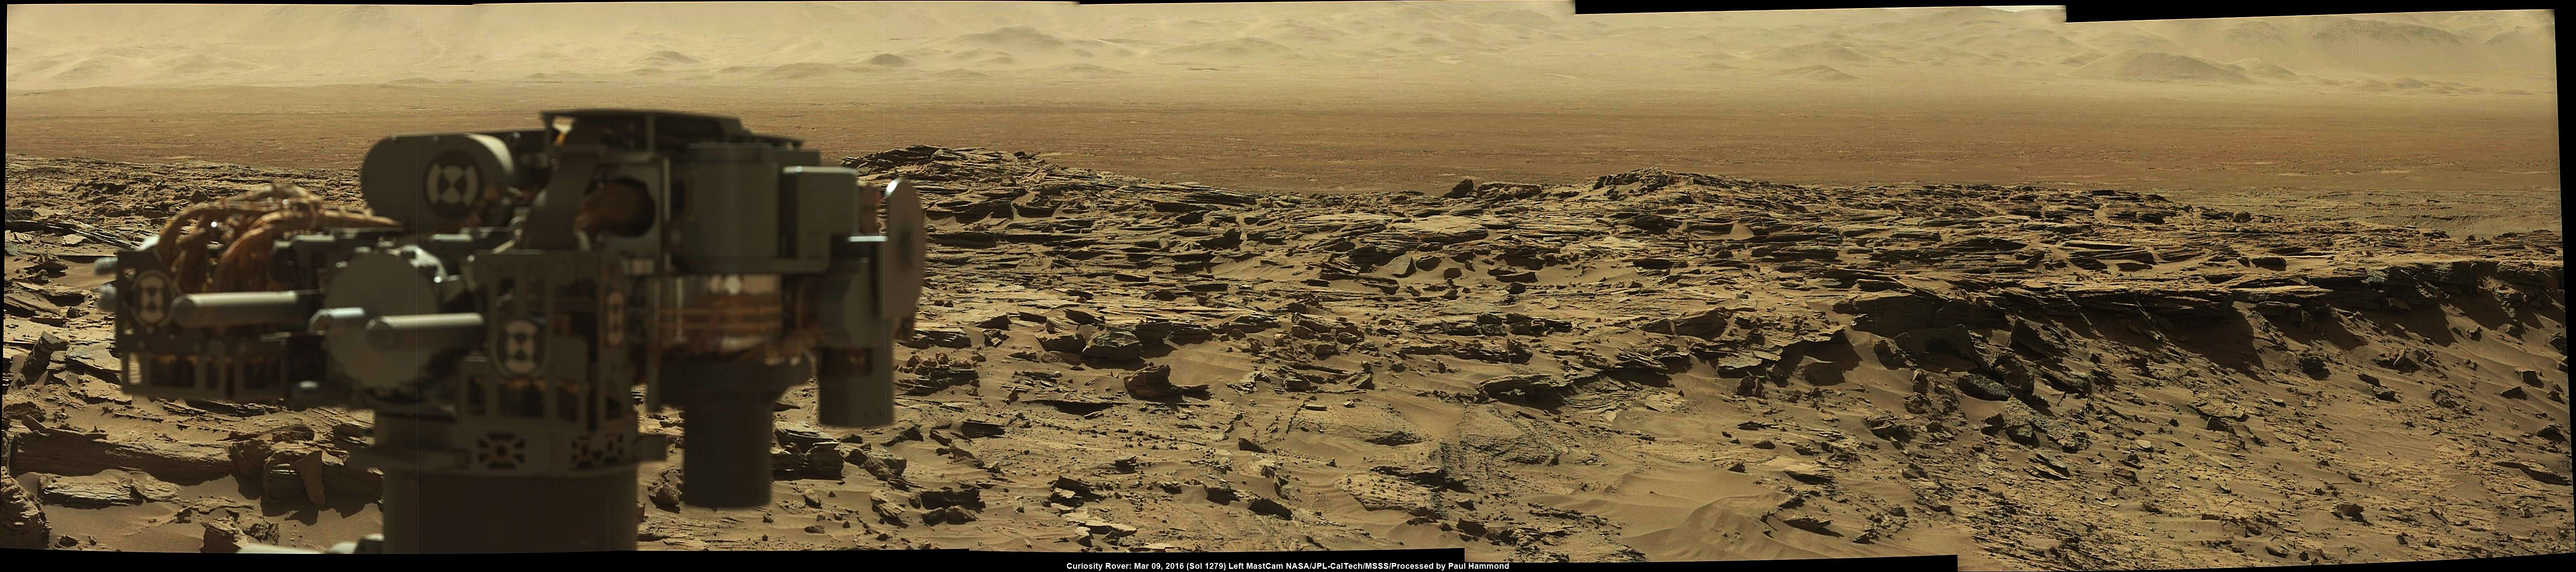 Stunning Panorama of Mars | Acquired by Curiosity Rover on Mission Sol 1276 (March 09 2016) [5688  1263]